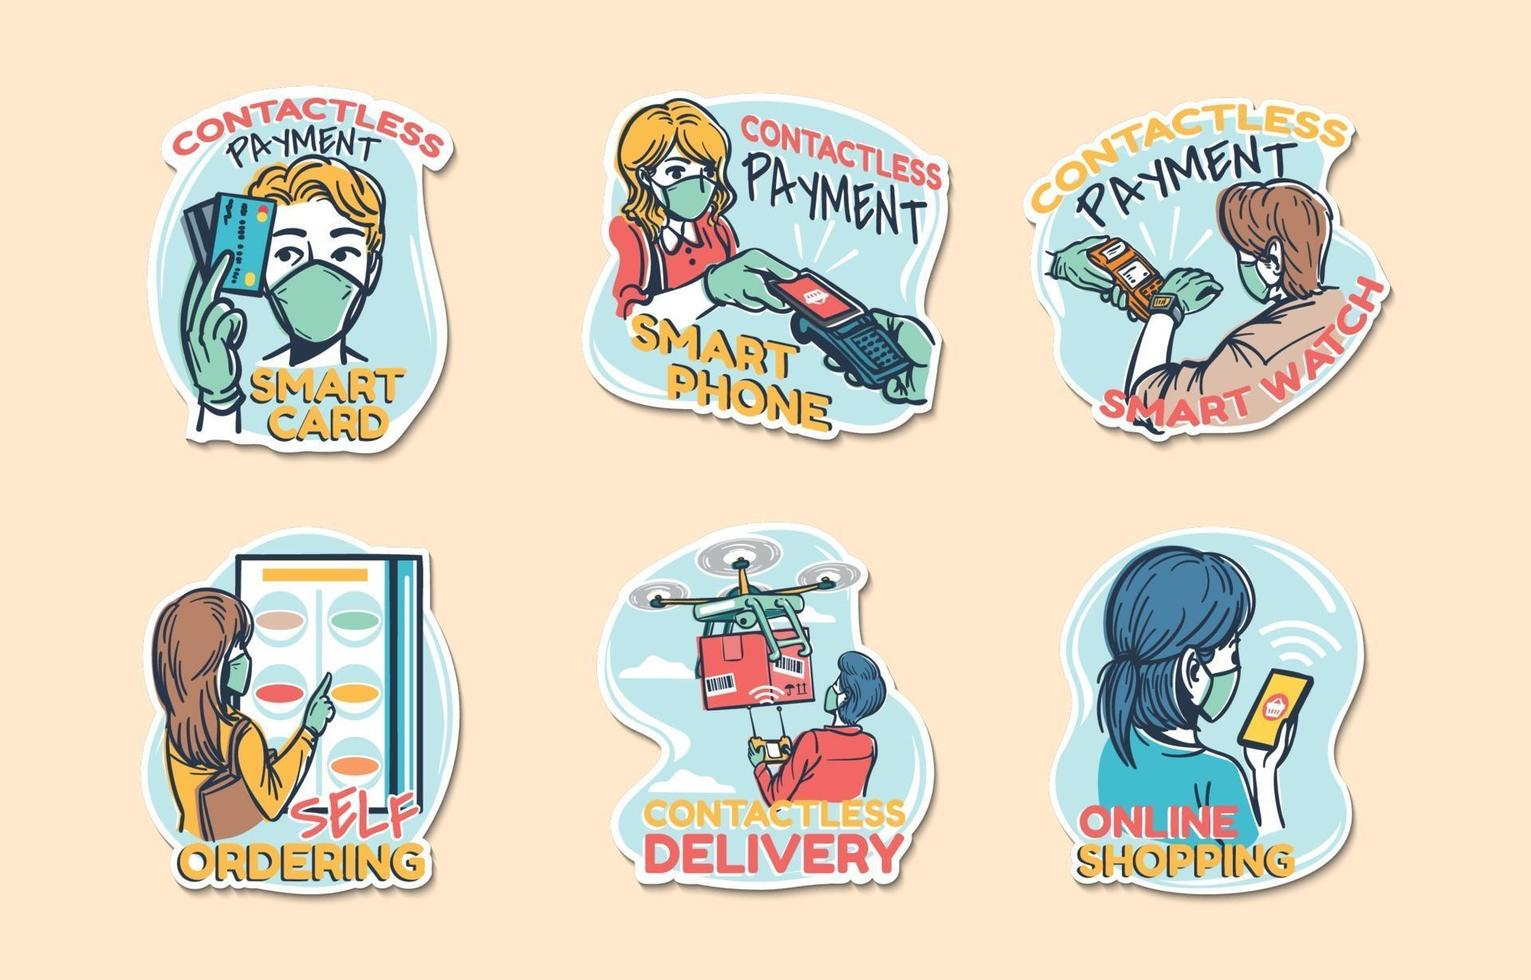 UNTACT Contactless Technology in Everyday Life Stickers vector